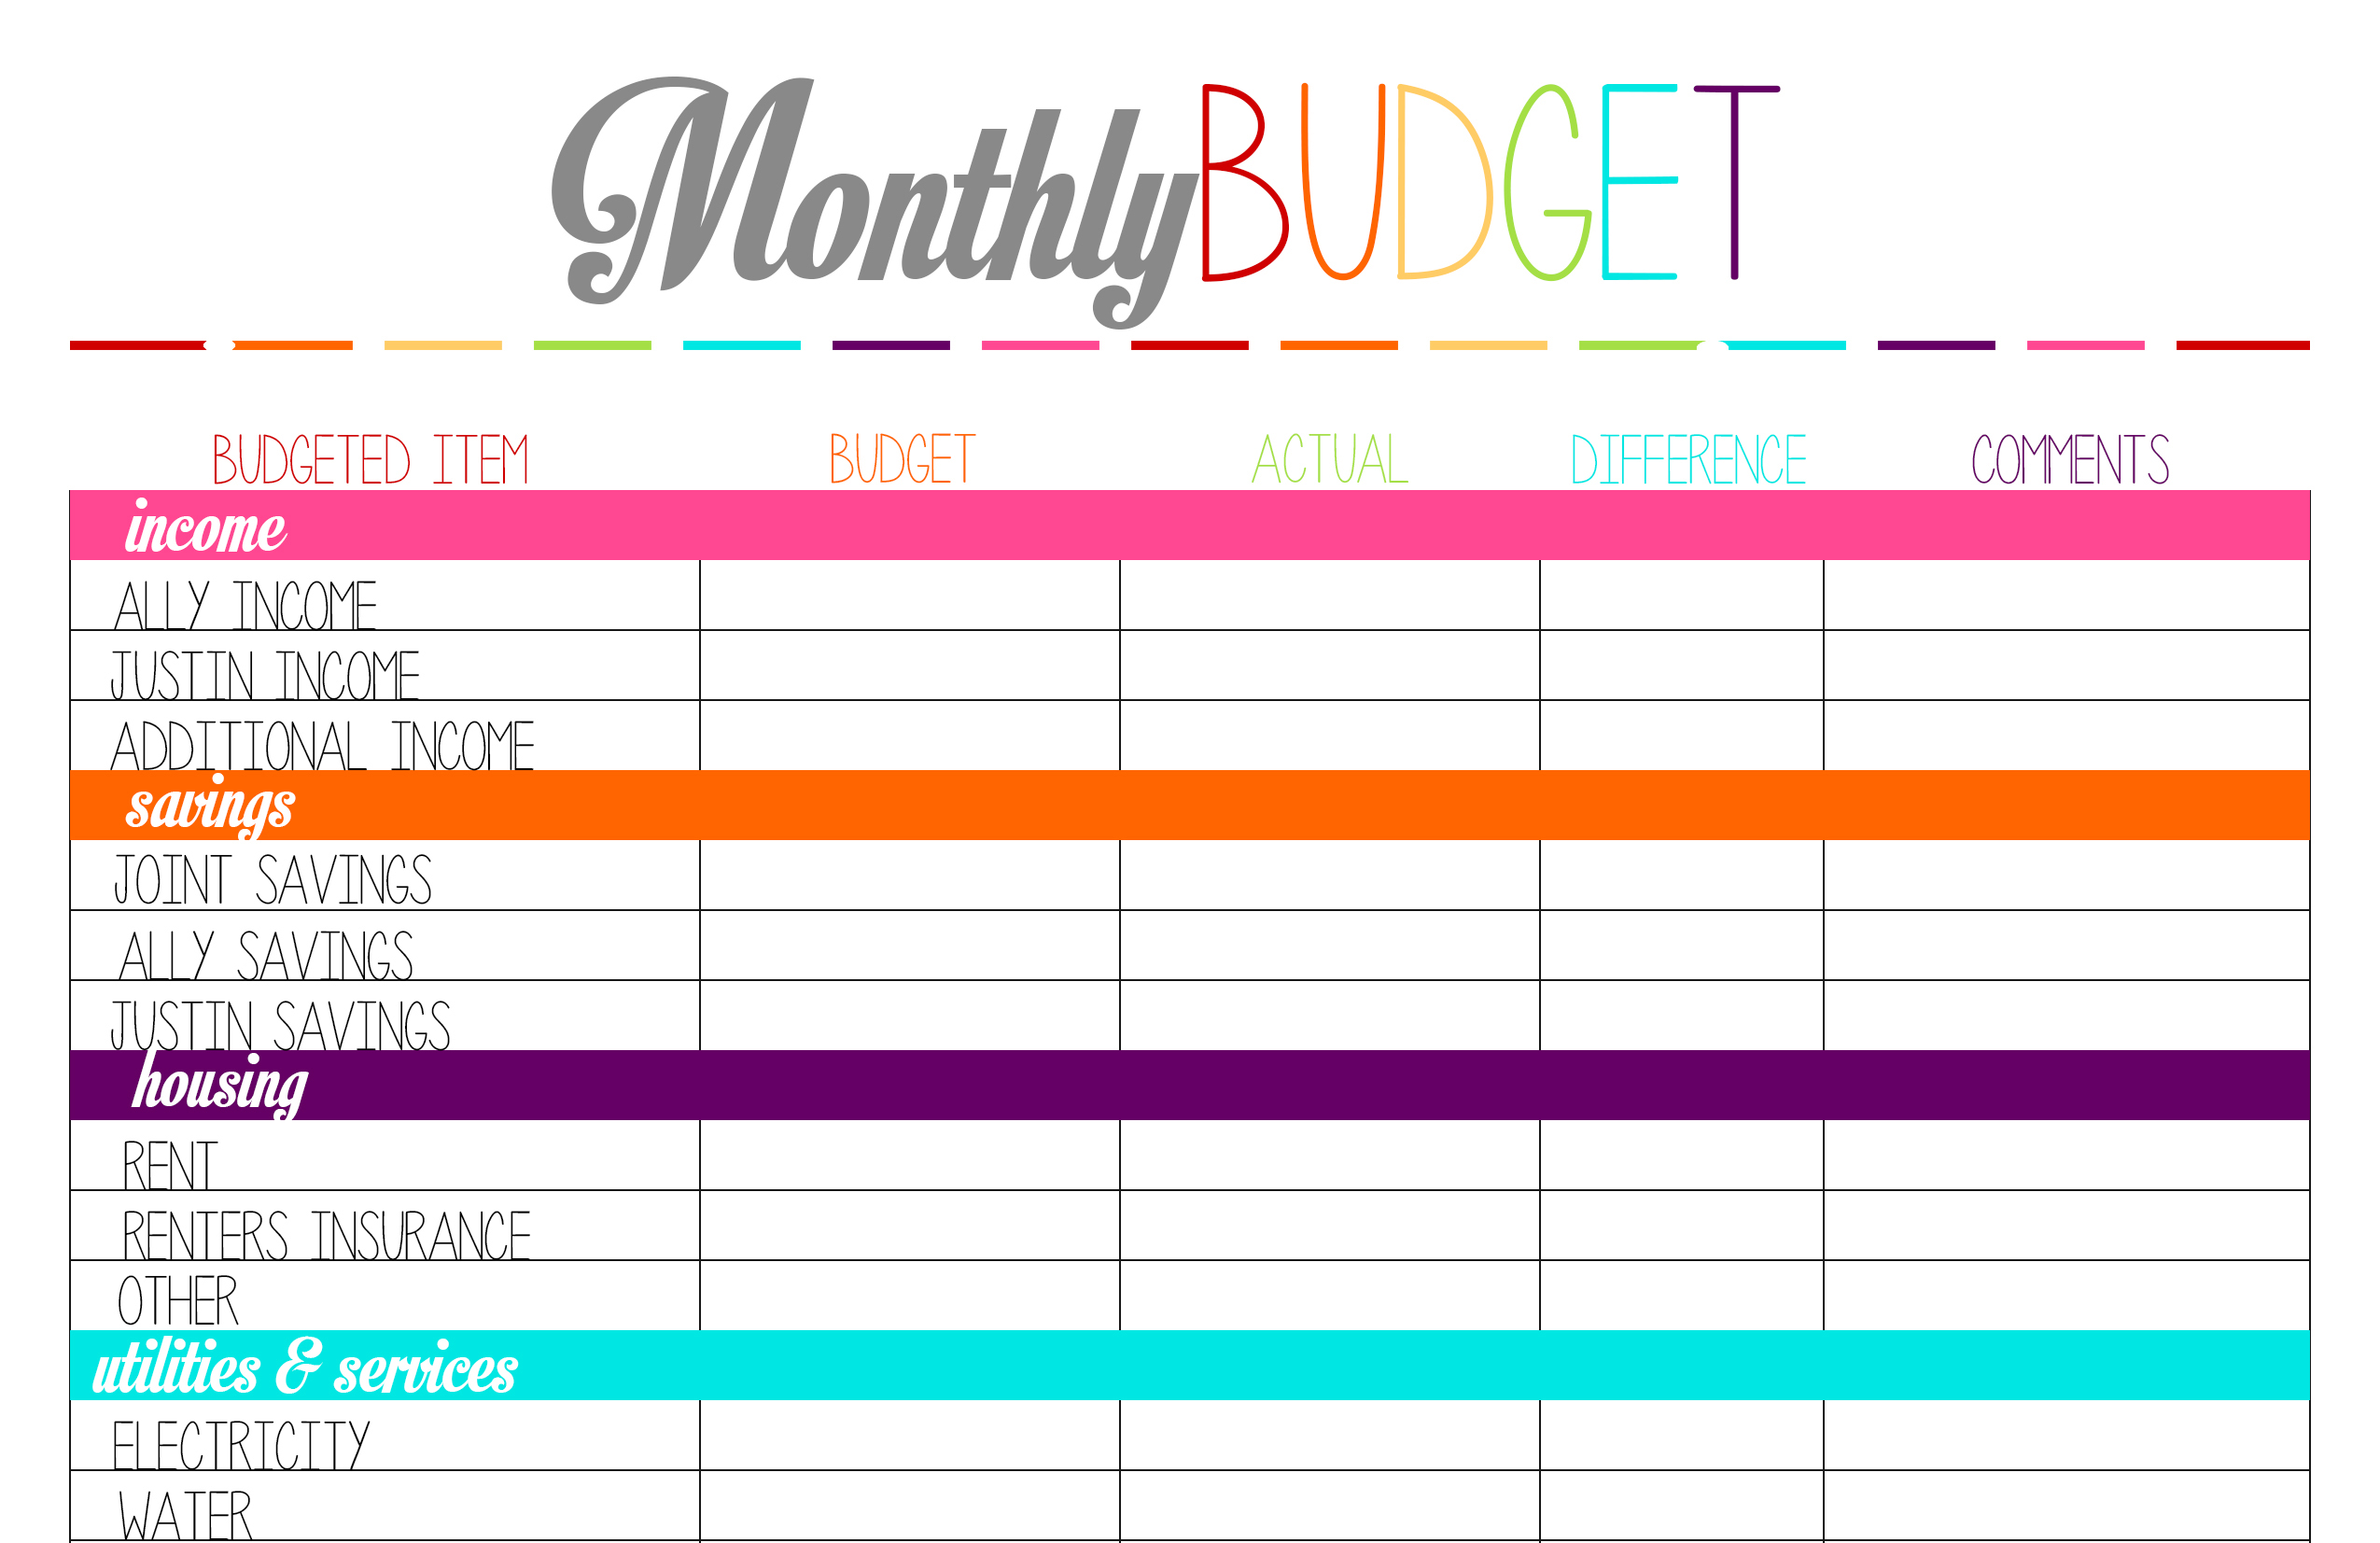 Worksheets Free Printable Budget Worksheets monthly budget sheets free printable bogas gardenstaging co budgets expenses worksheet